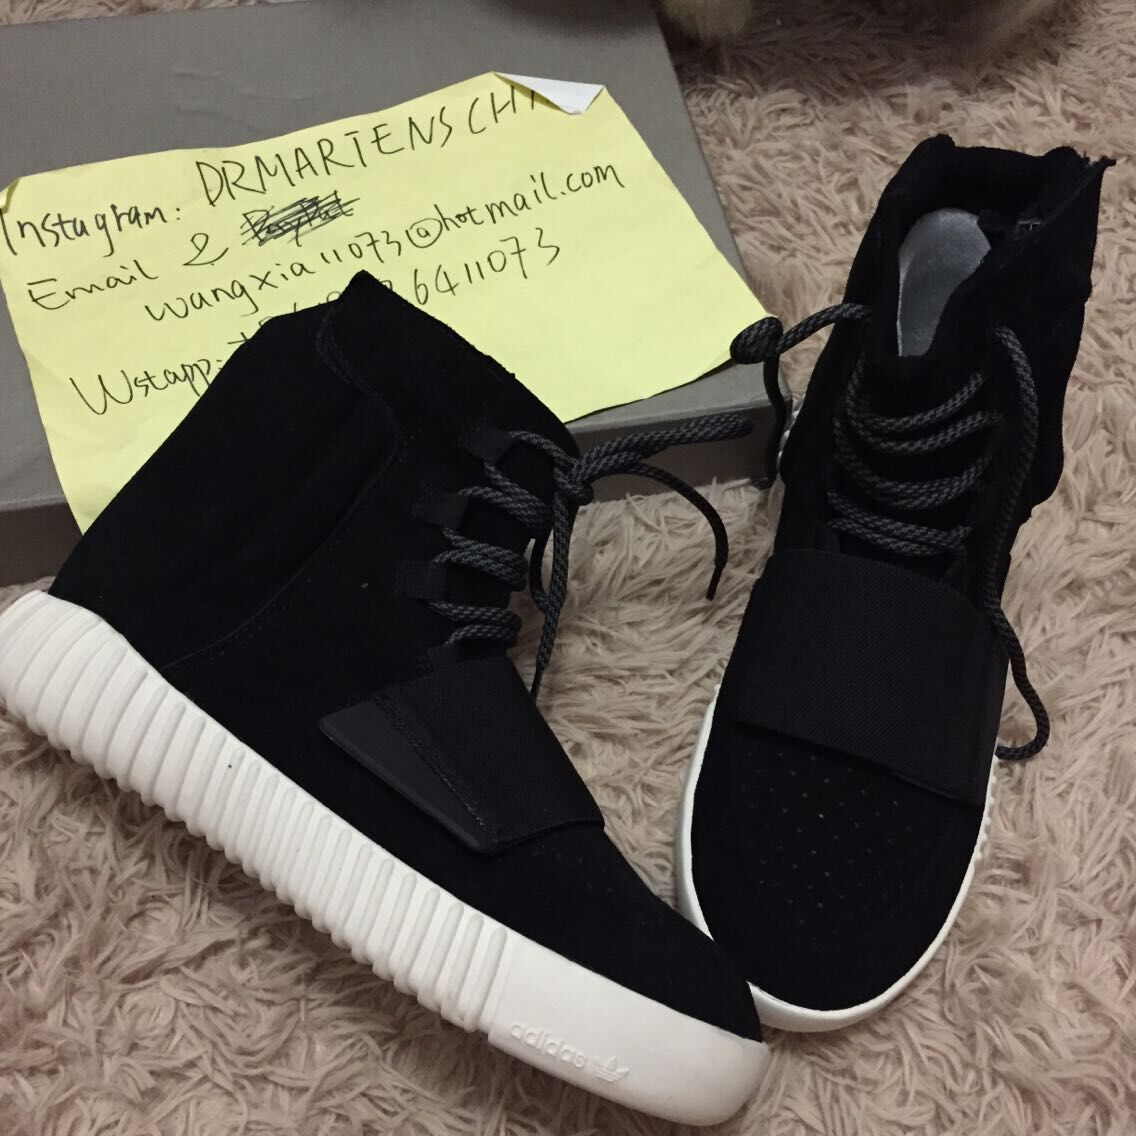 3679095aa discount code for yeezy 750 boost adidas yzy kaynewest more info welcome to  b2d3a 2b6c0